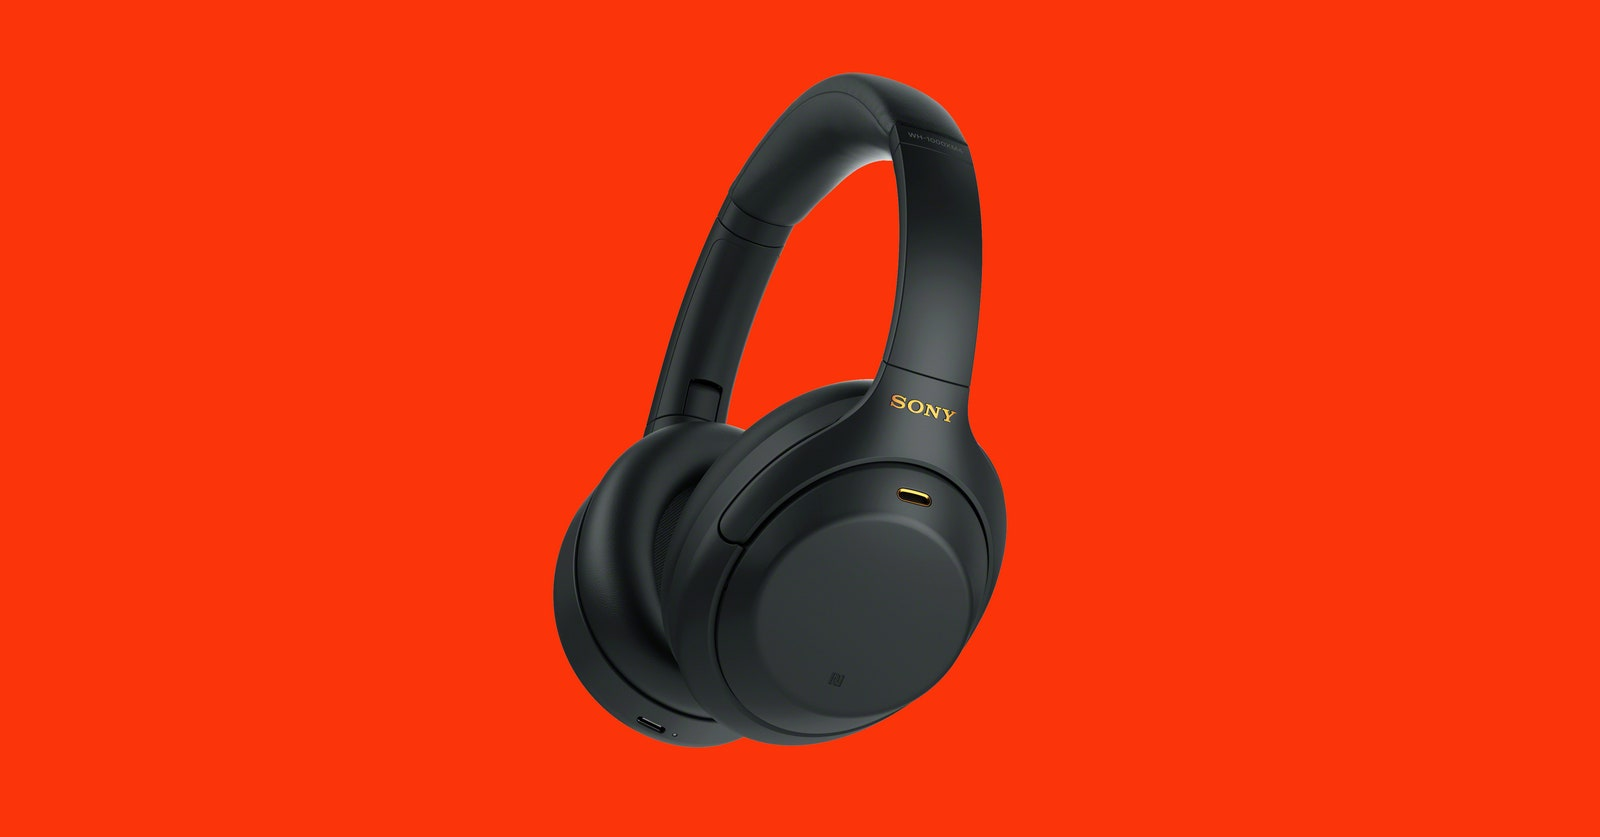 The 15 Best Wireless Headphones (2021): Earbuds, Noise-Canceling, and More